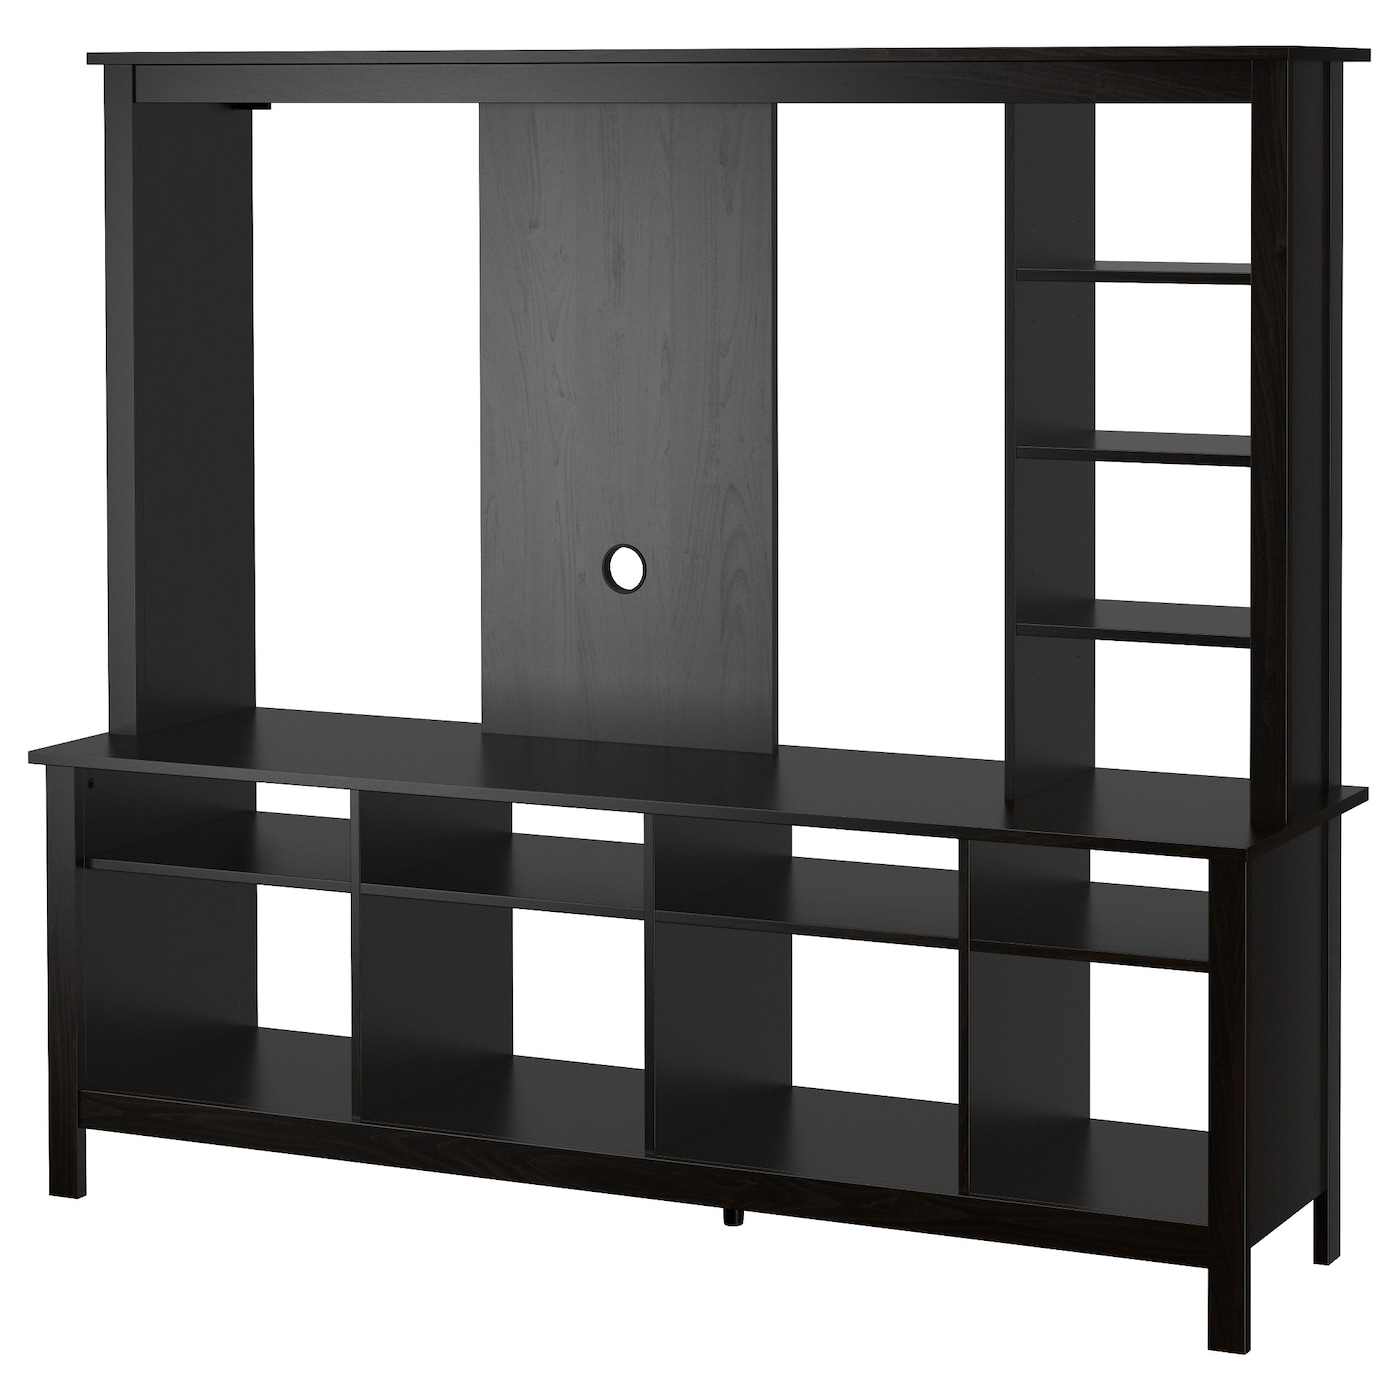 Meuble Tv Ikea - Tomn S Meuble Tv Brun Noir 183x48x163 Cm Ikea[mjhdah]http://www.brainjobs.us/list/13607/best%C3%A5-tv-storage-combination-black-brown-selsviken-high-gloss-beige__0362160_pe546344_s5.jpg